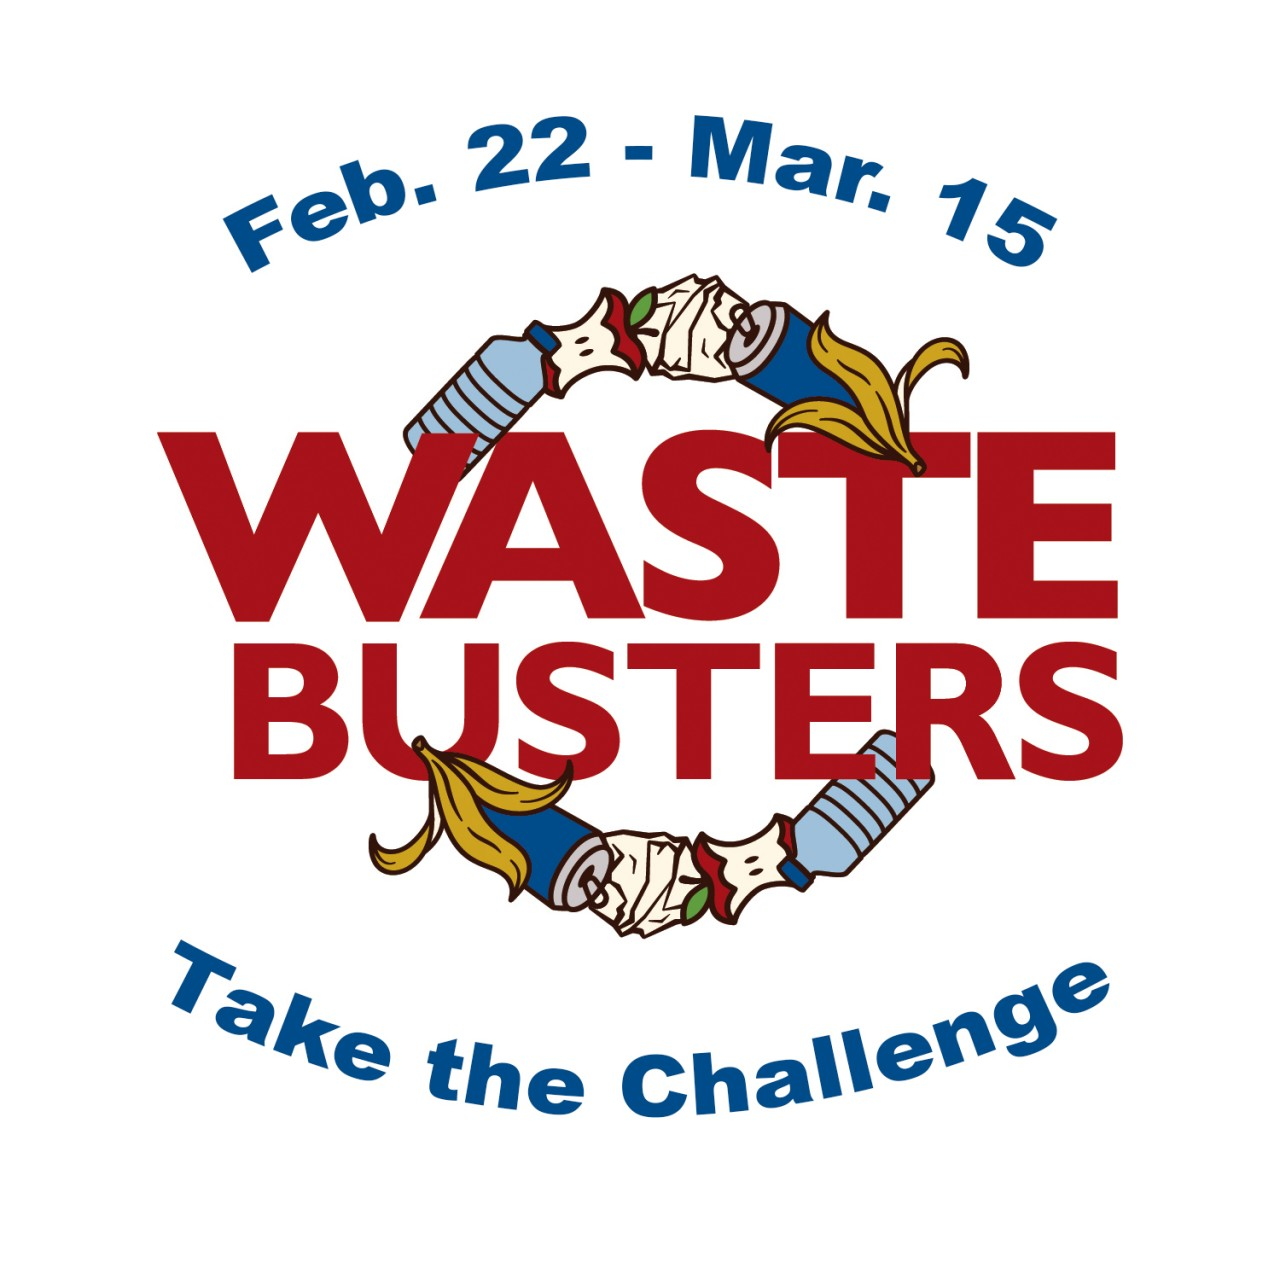 wastebusters